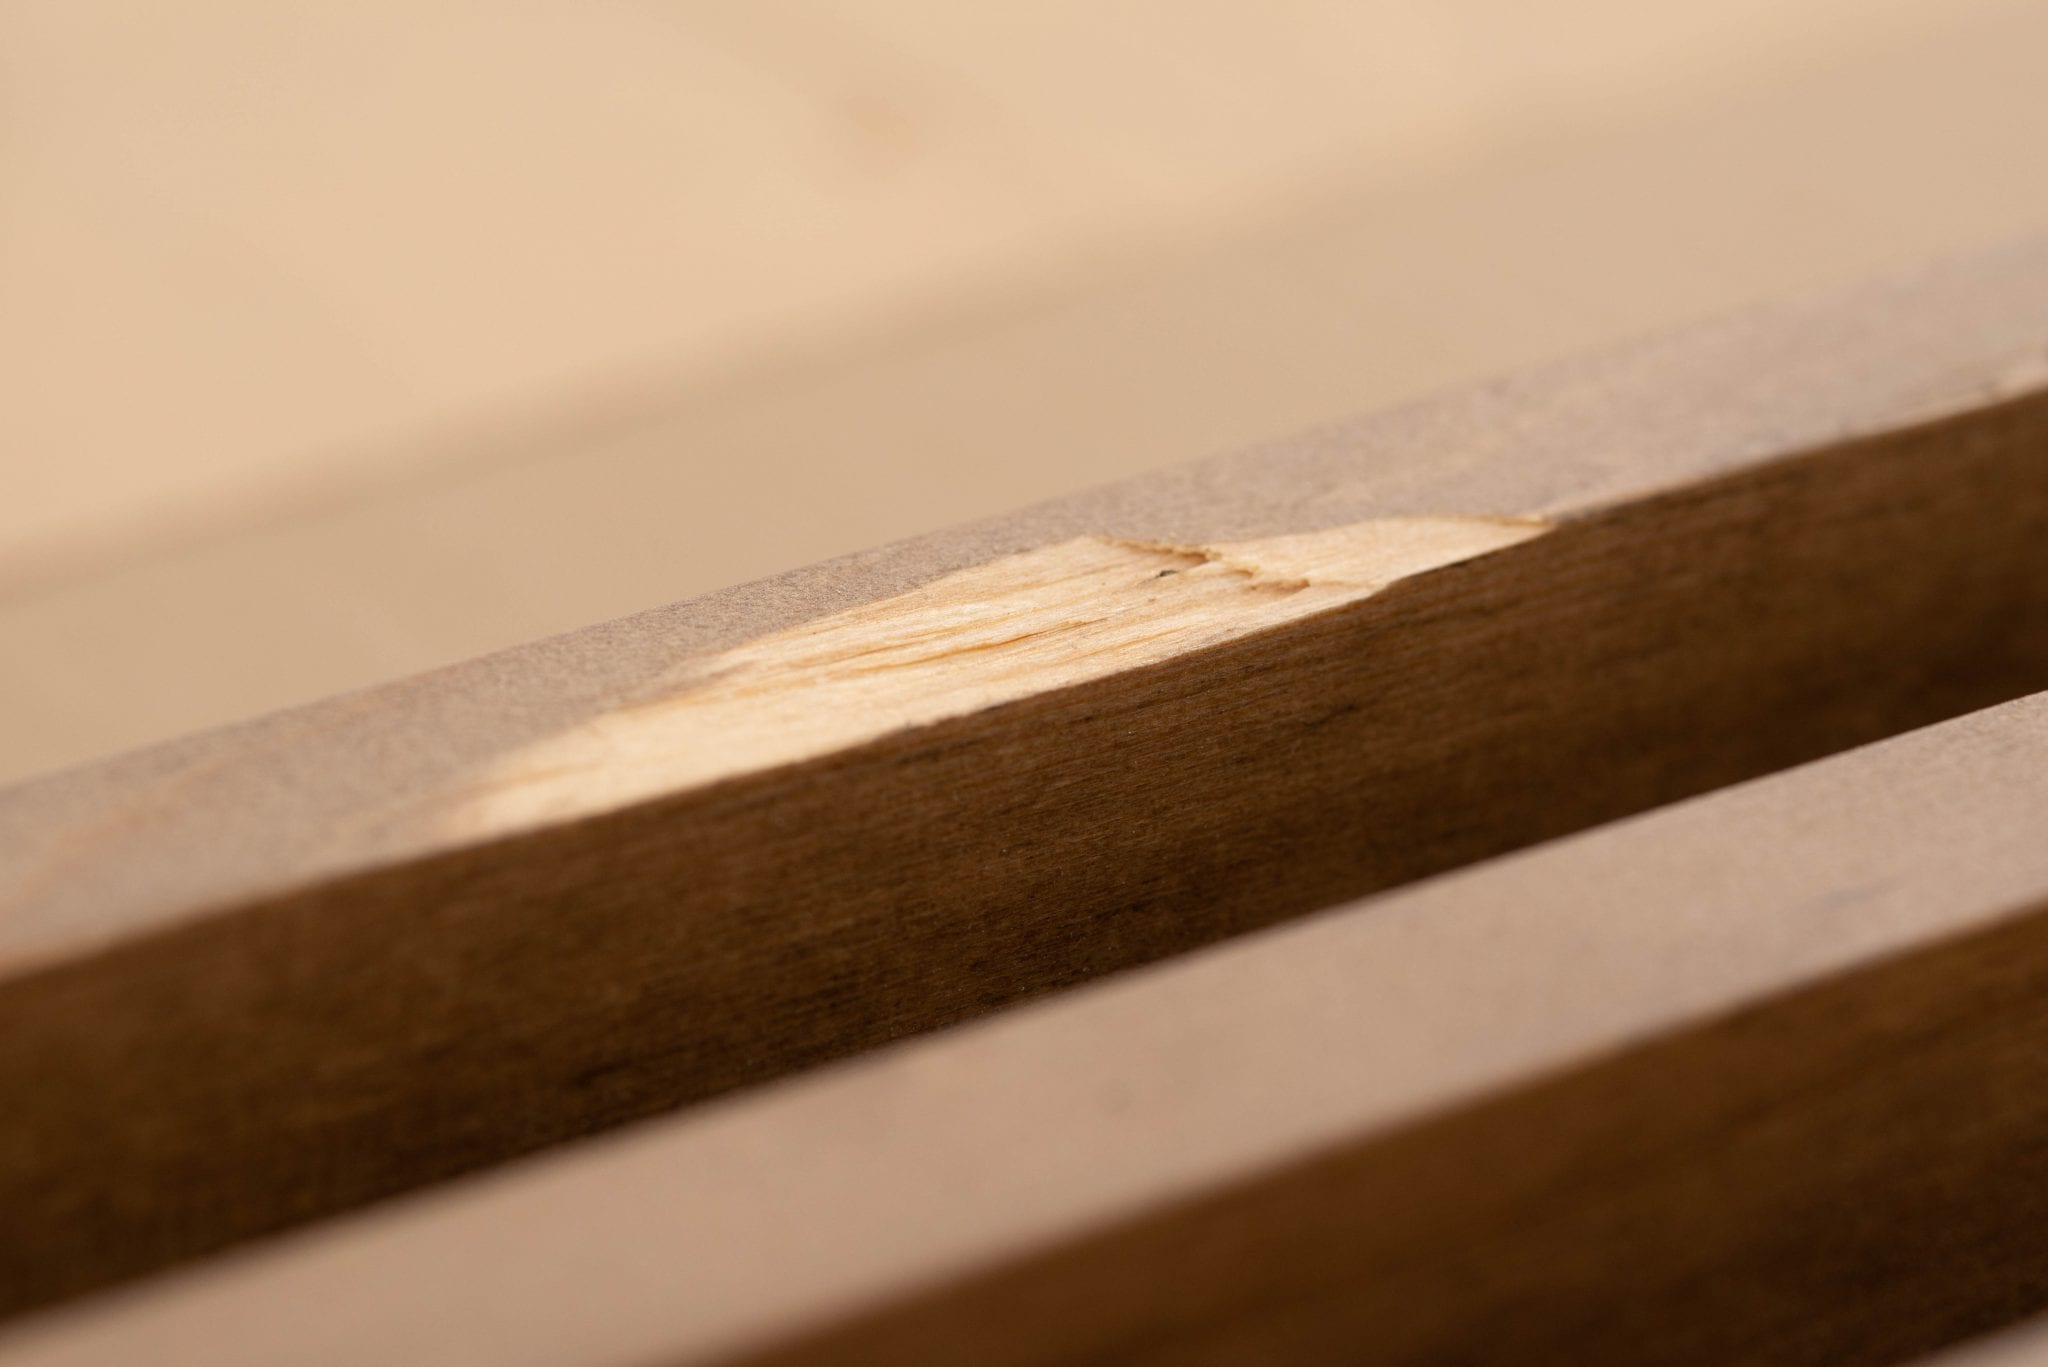 Here you can see a wood repair needed on the face of a wood grille.